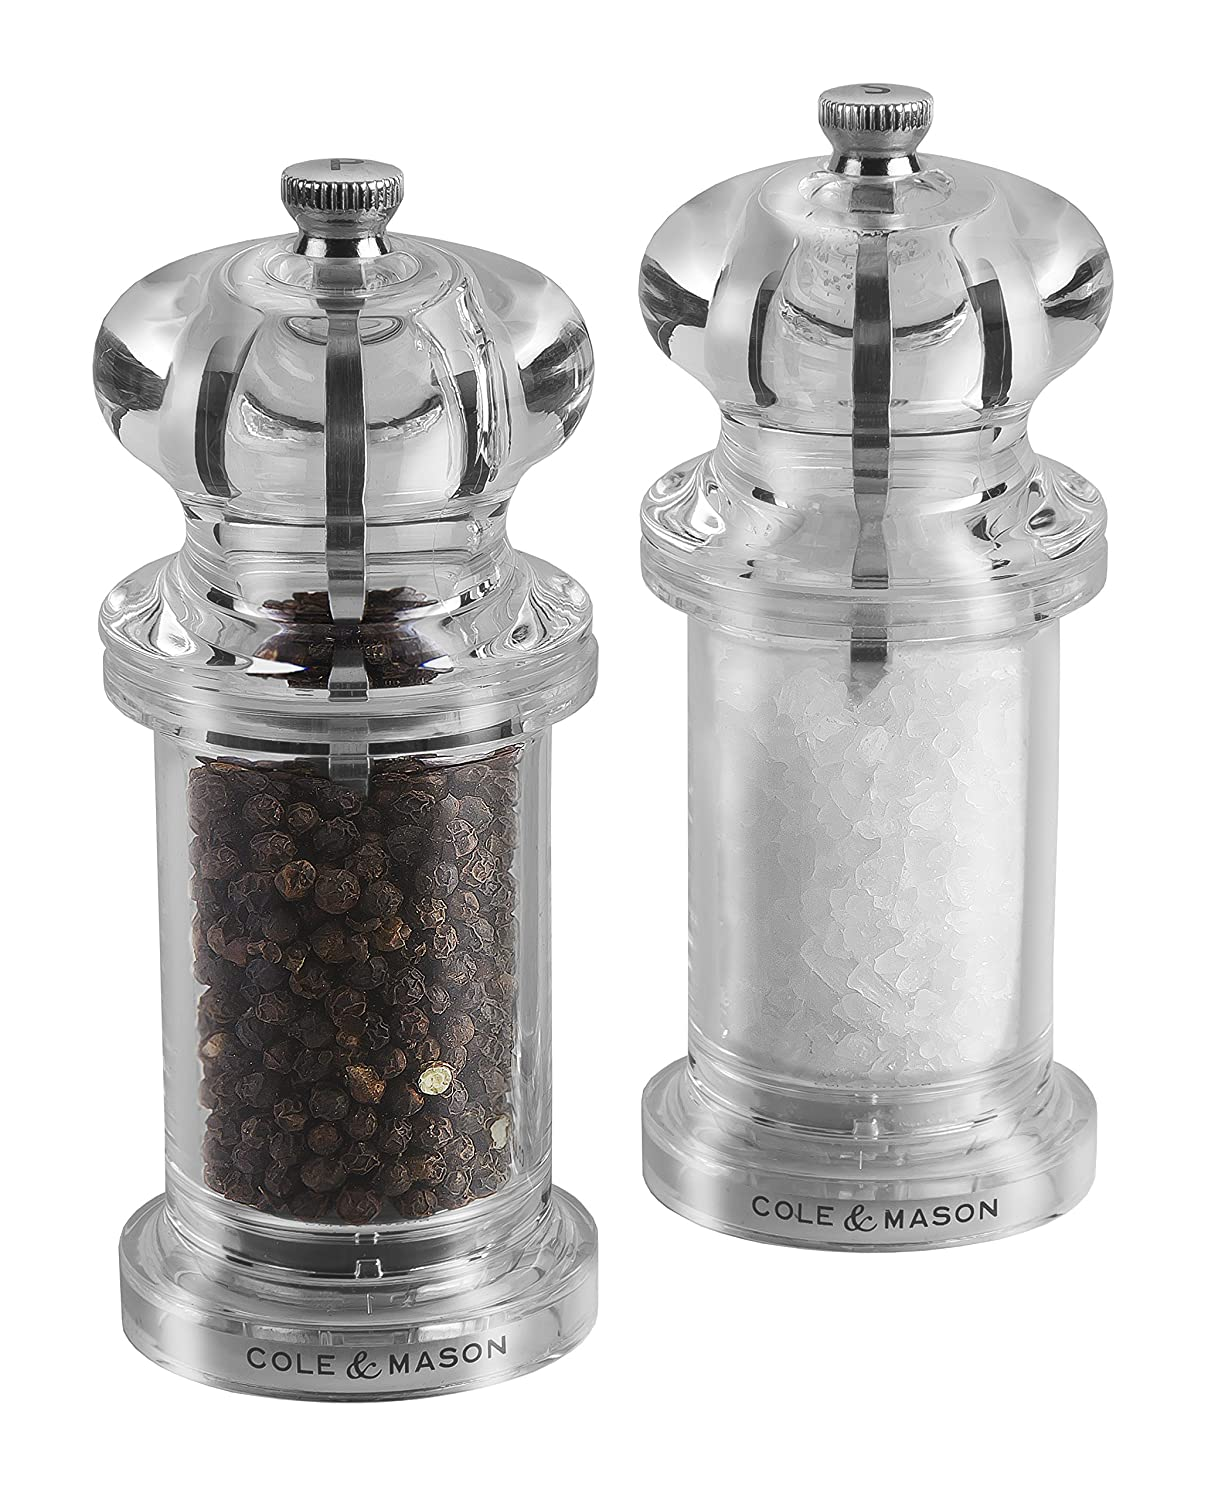 Cole & Mason Precision Grind 505 Salt and Pepper Mill Gift Set with Accessories Salt and Pepper Mill Tray, Salt and Pepper Refill Funnel, Herb and Spice Carousel and Granite Pestle and Mortar